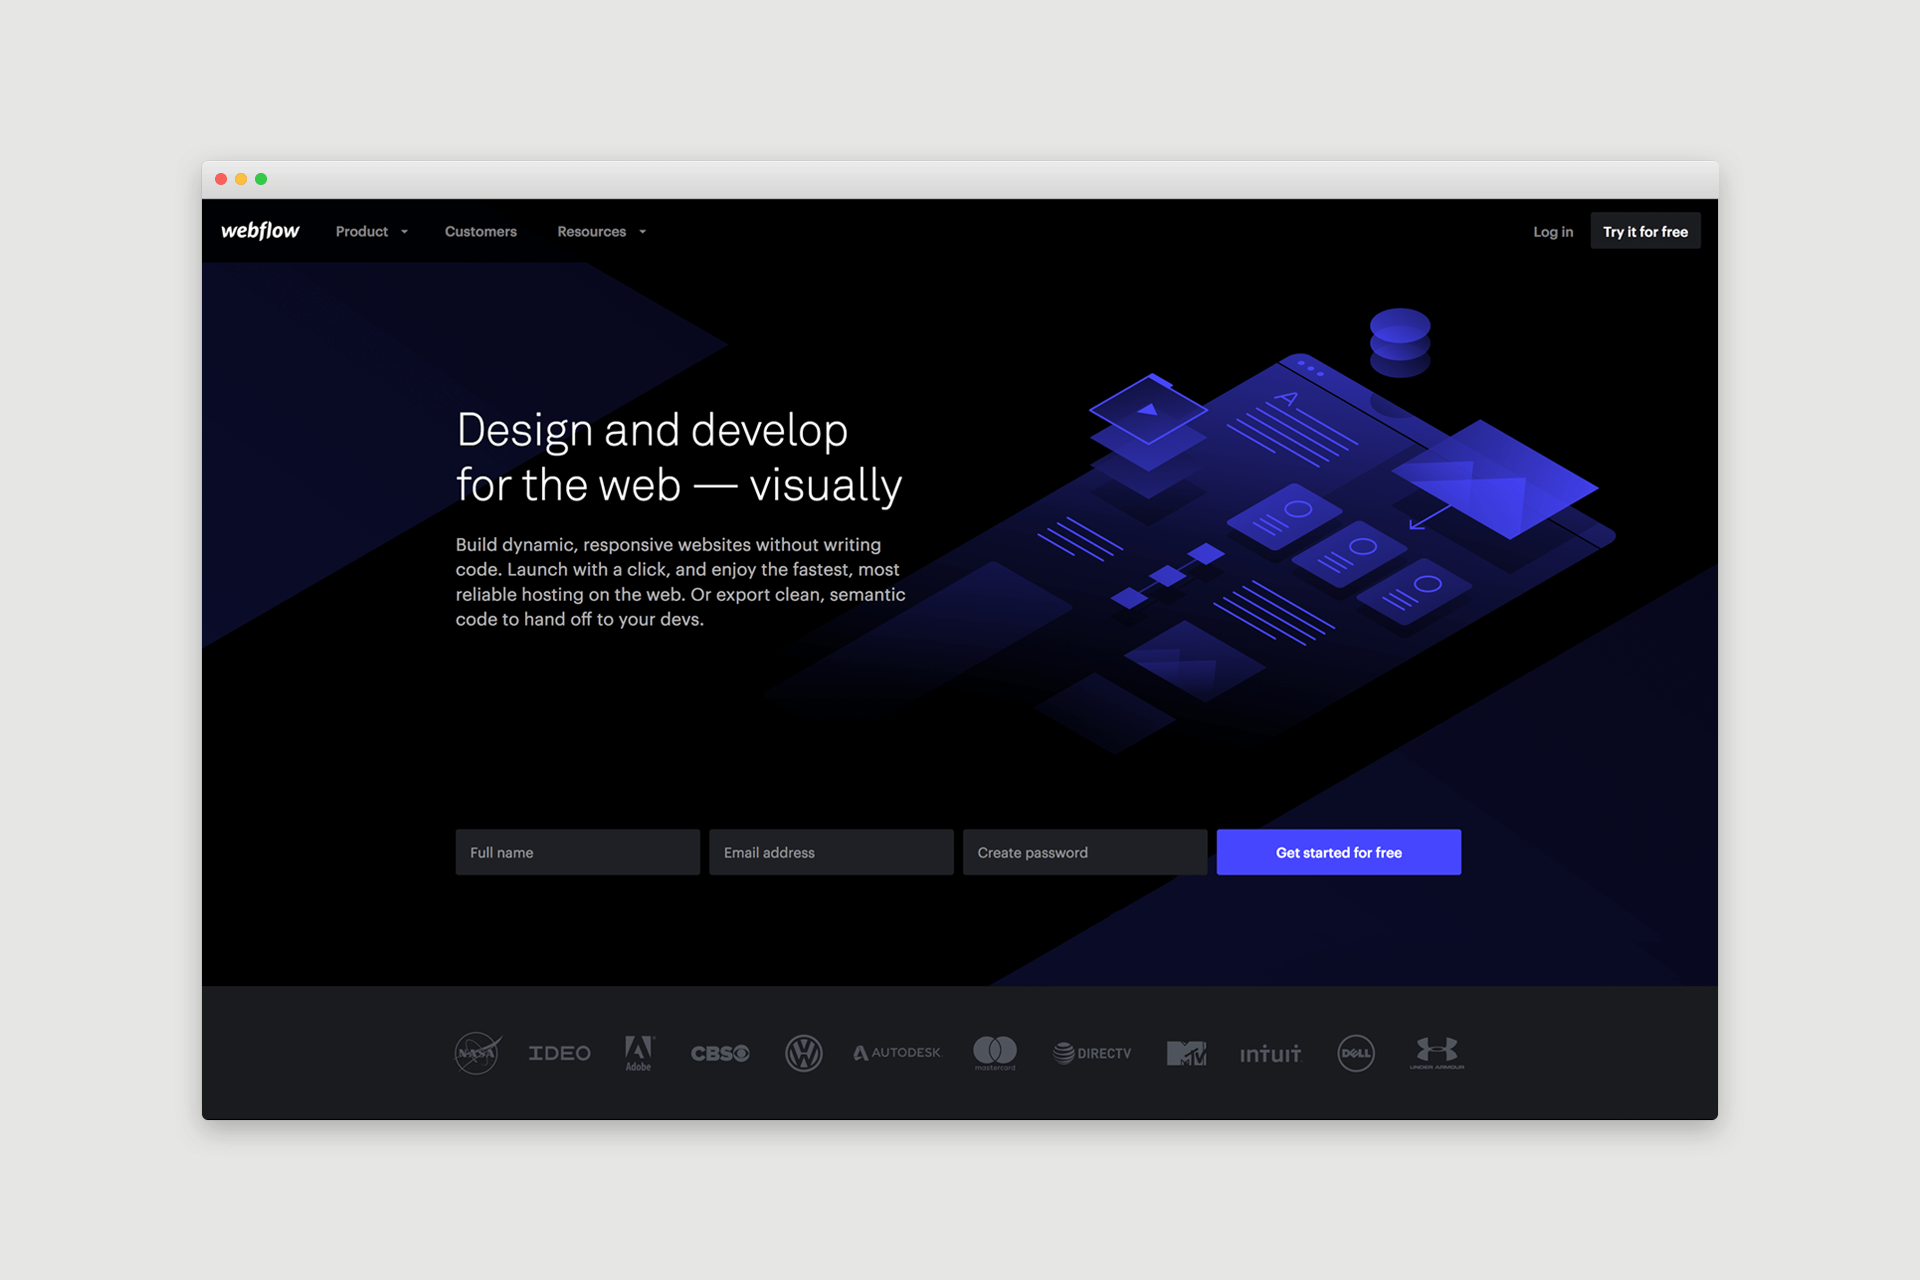 Webflow Website Design